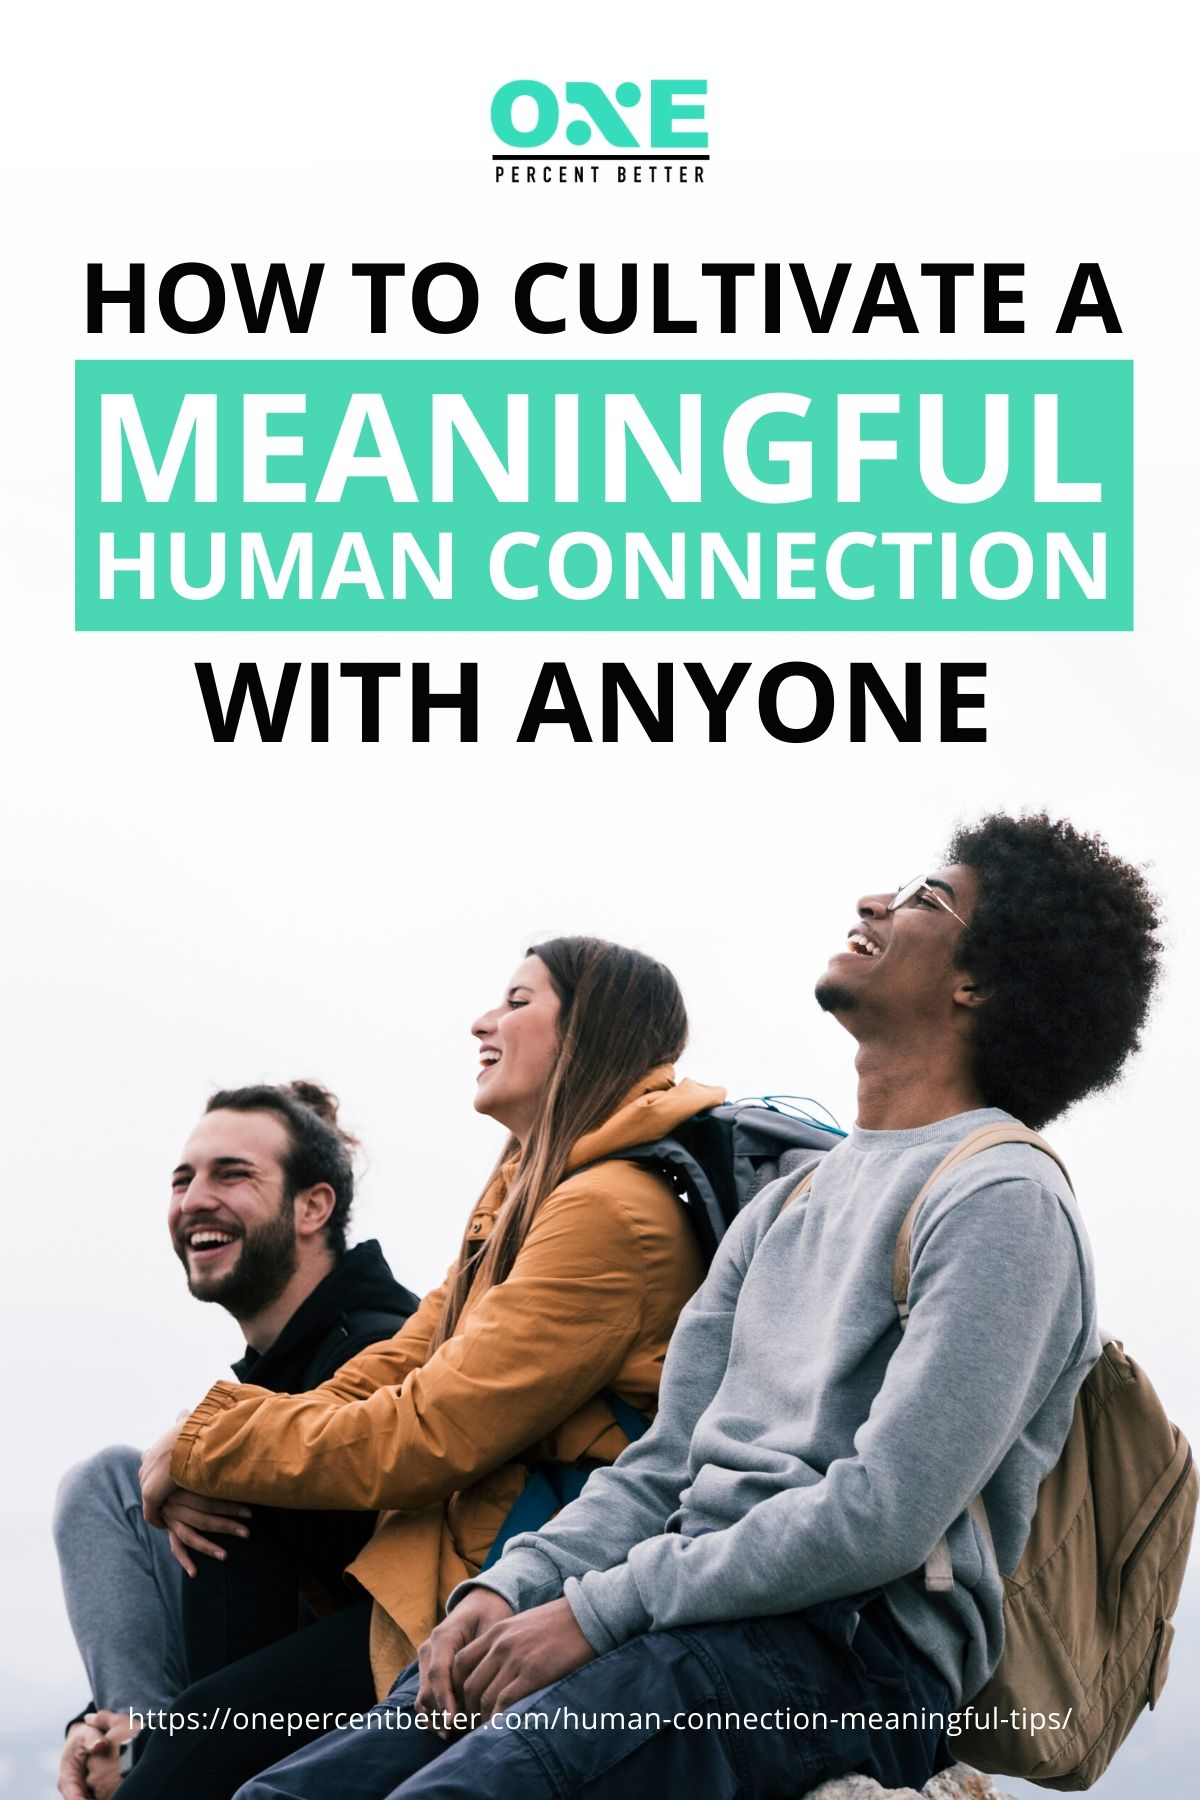 How To Cultivate A Meaningful Human Connection With Anyone | https://onepercentbetter.com/human-connection-meaningful-tips/